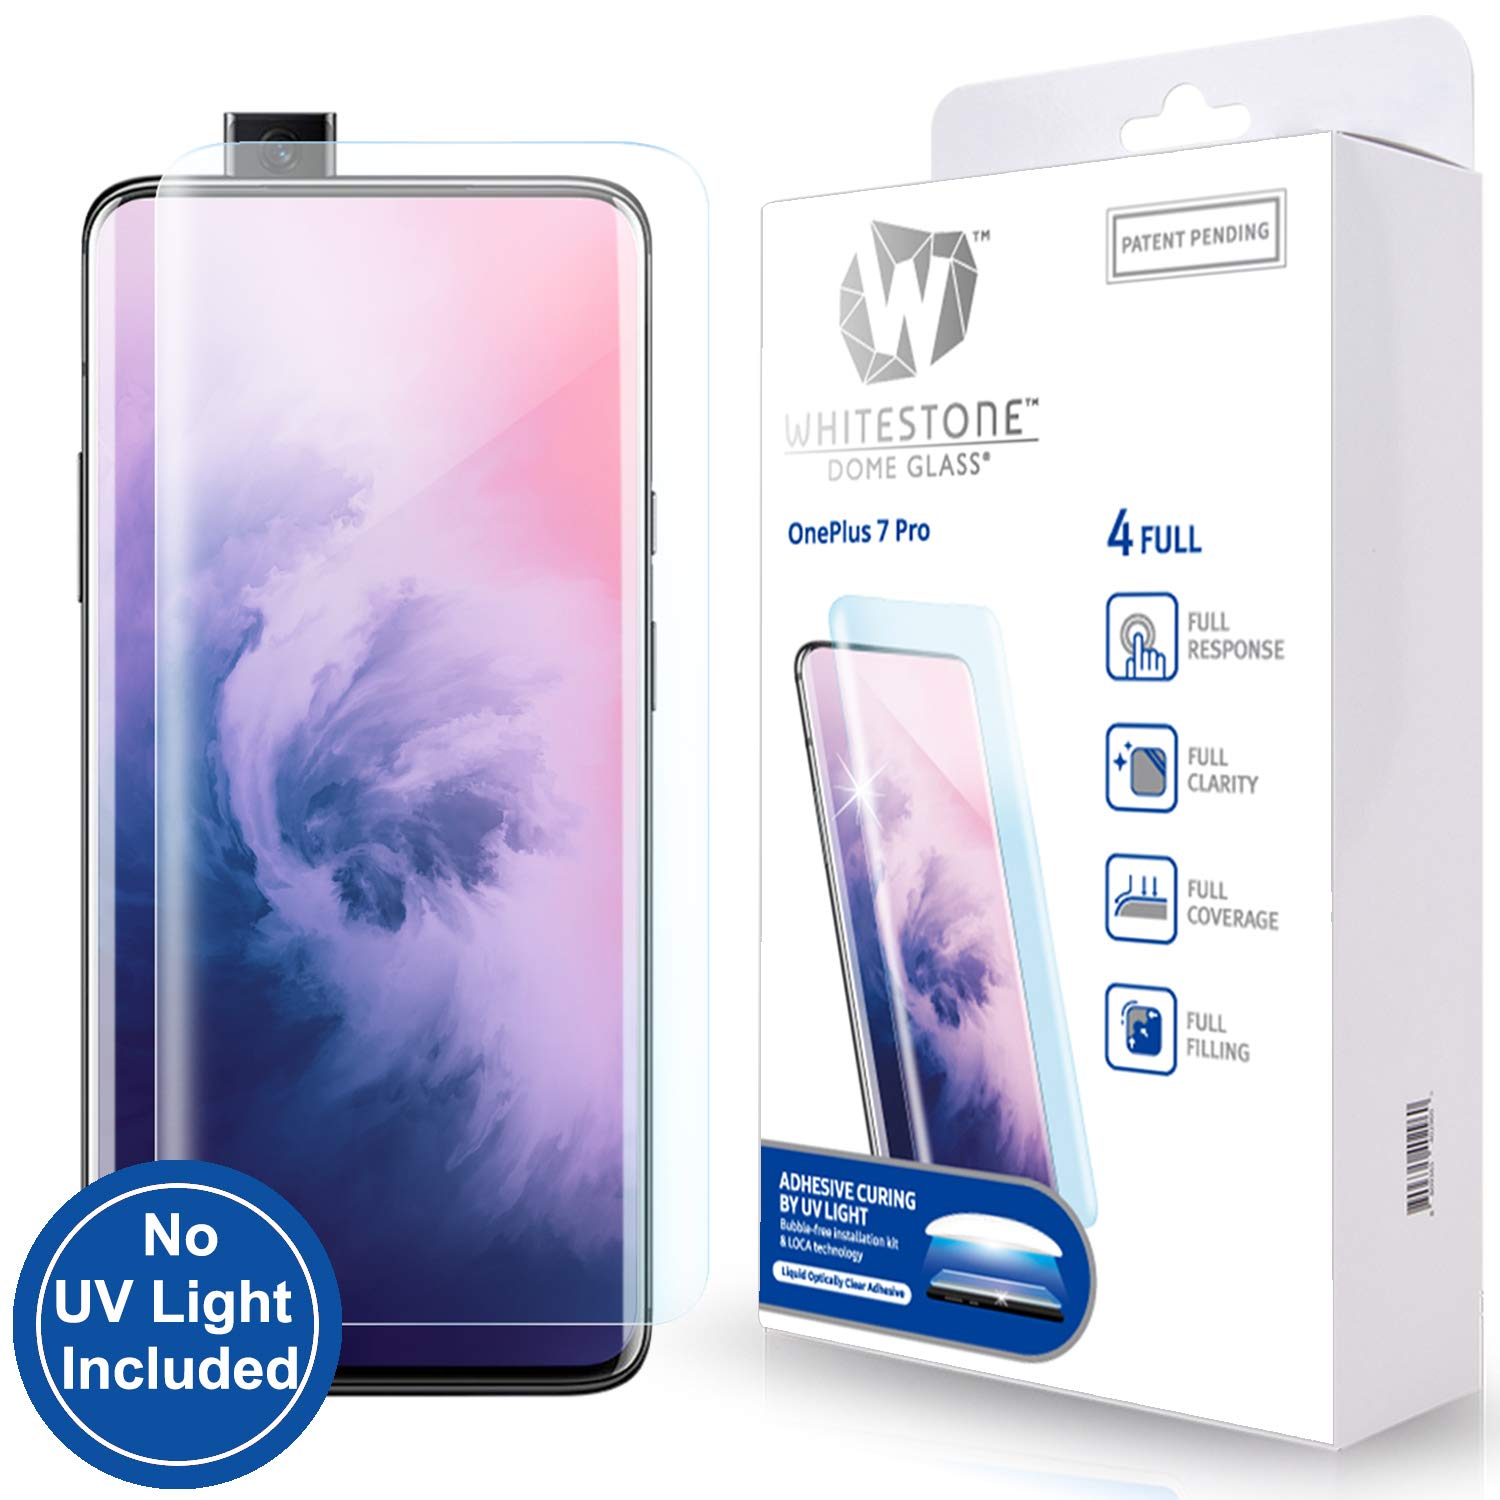 Tempered Glass Screen Protector for OnePlus 7T Pro 5G and 7 Pro [Dome Glass] 3D Exclusive Solution for Full Coverage Protection, Easy Replacement Kit by Whitestone for 7T Pro and 7 Pro Models - No UV Lamp by Dome Glass